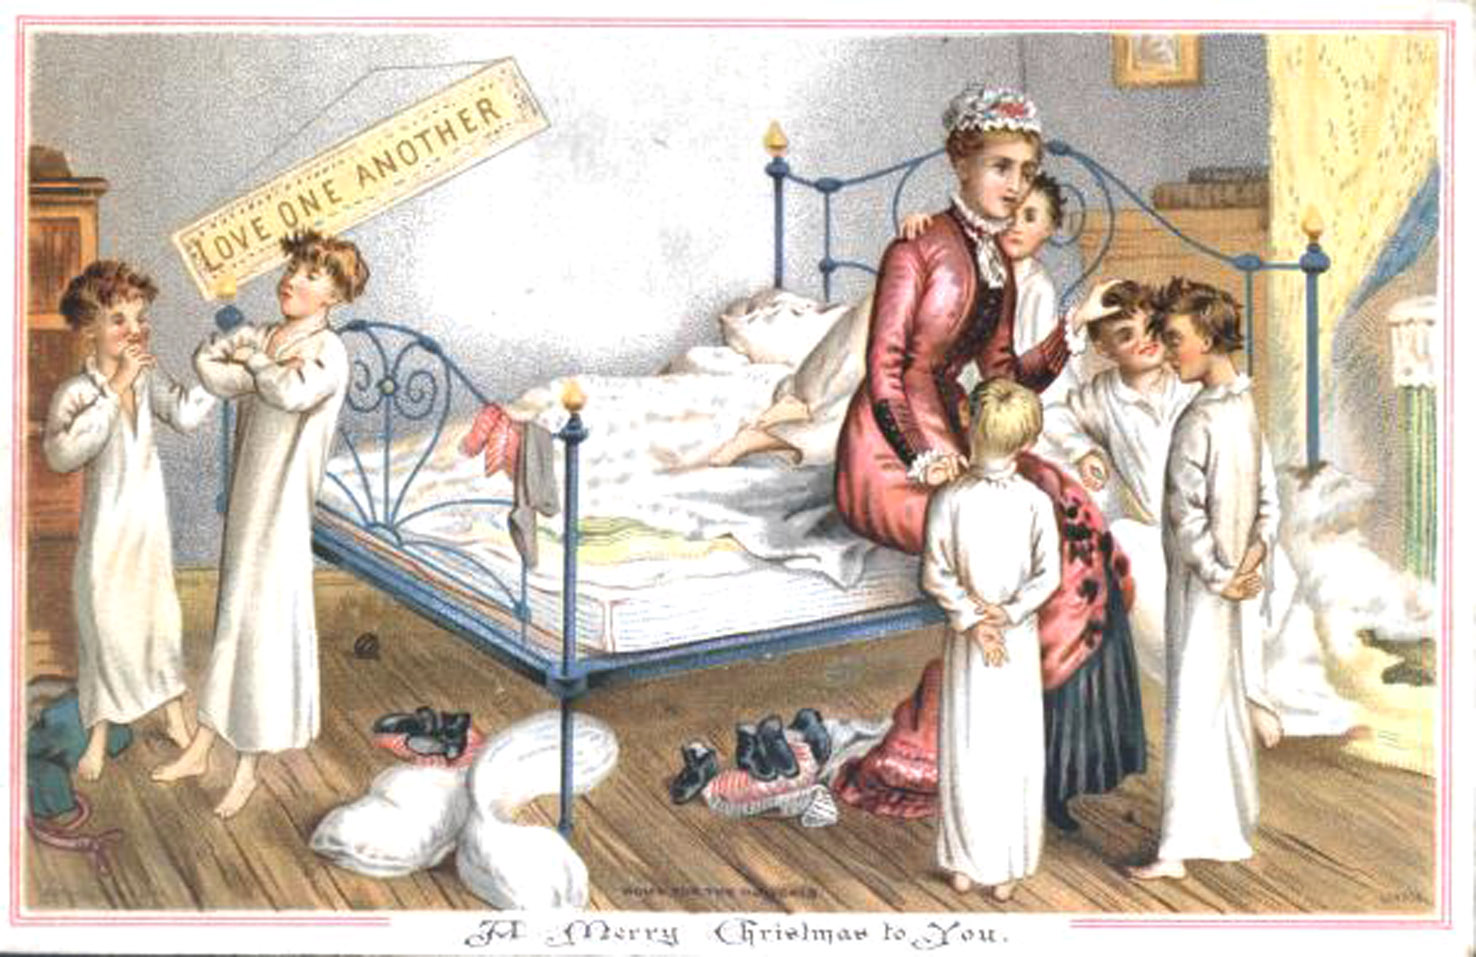 Boys in bedroom 1881 - No 04 in series of four amusing vintage Christmas cards